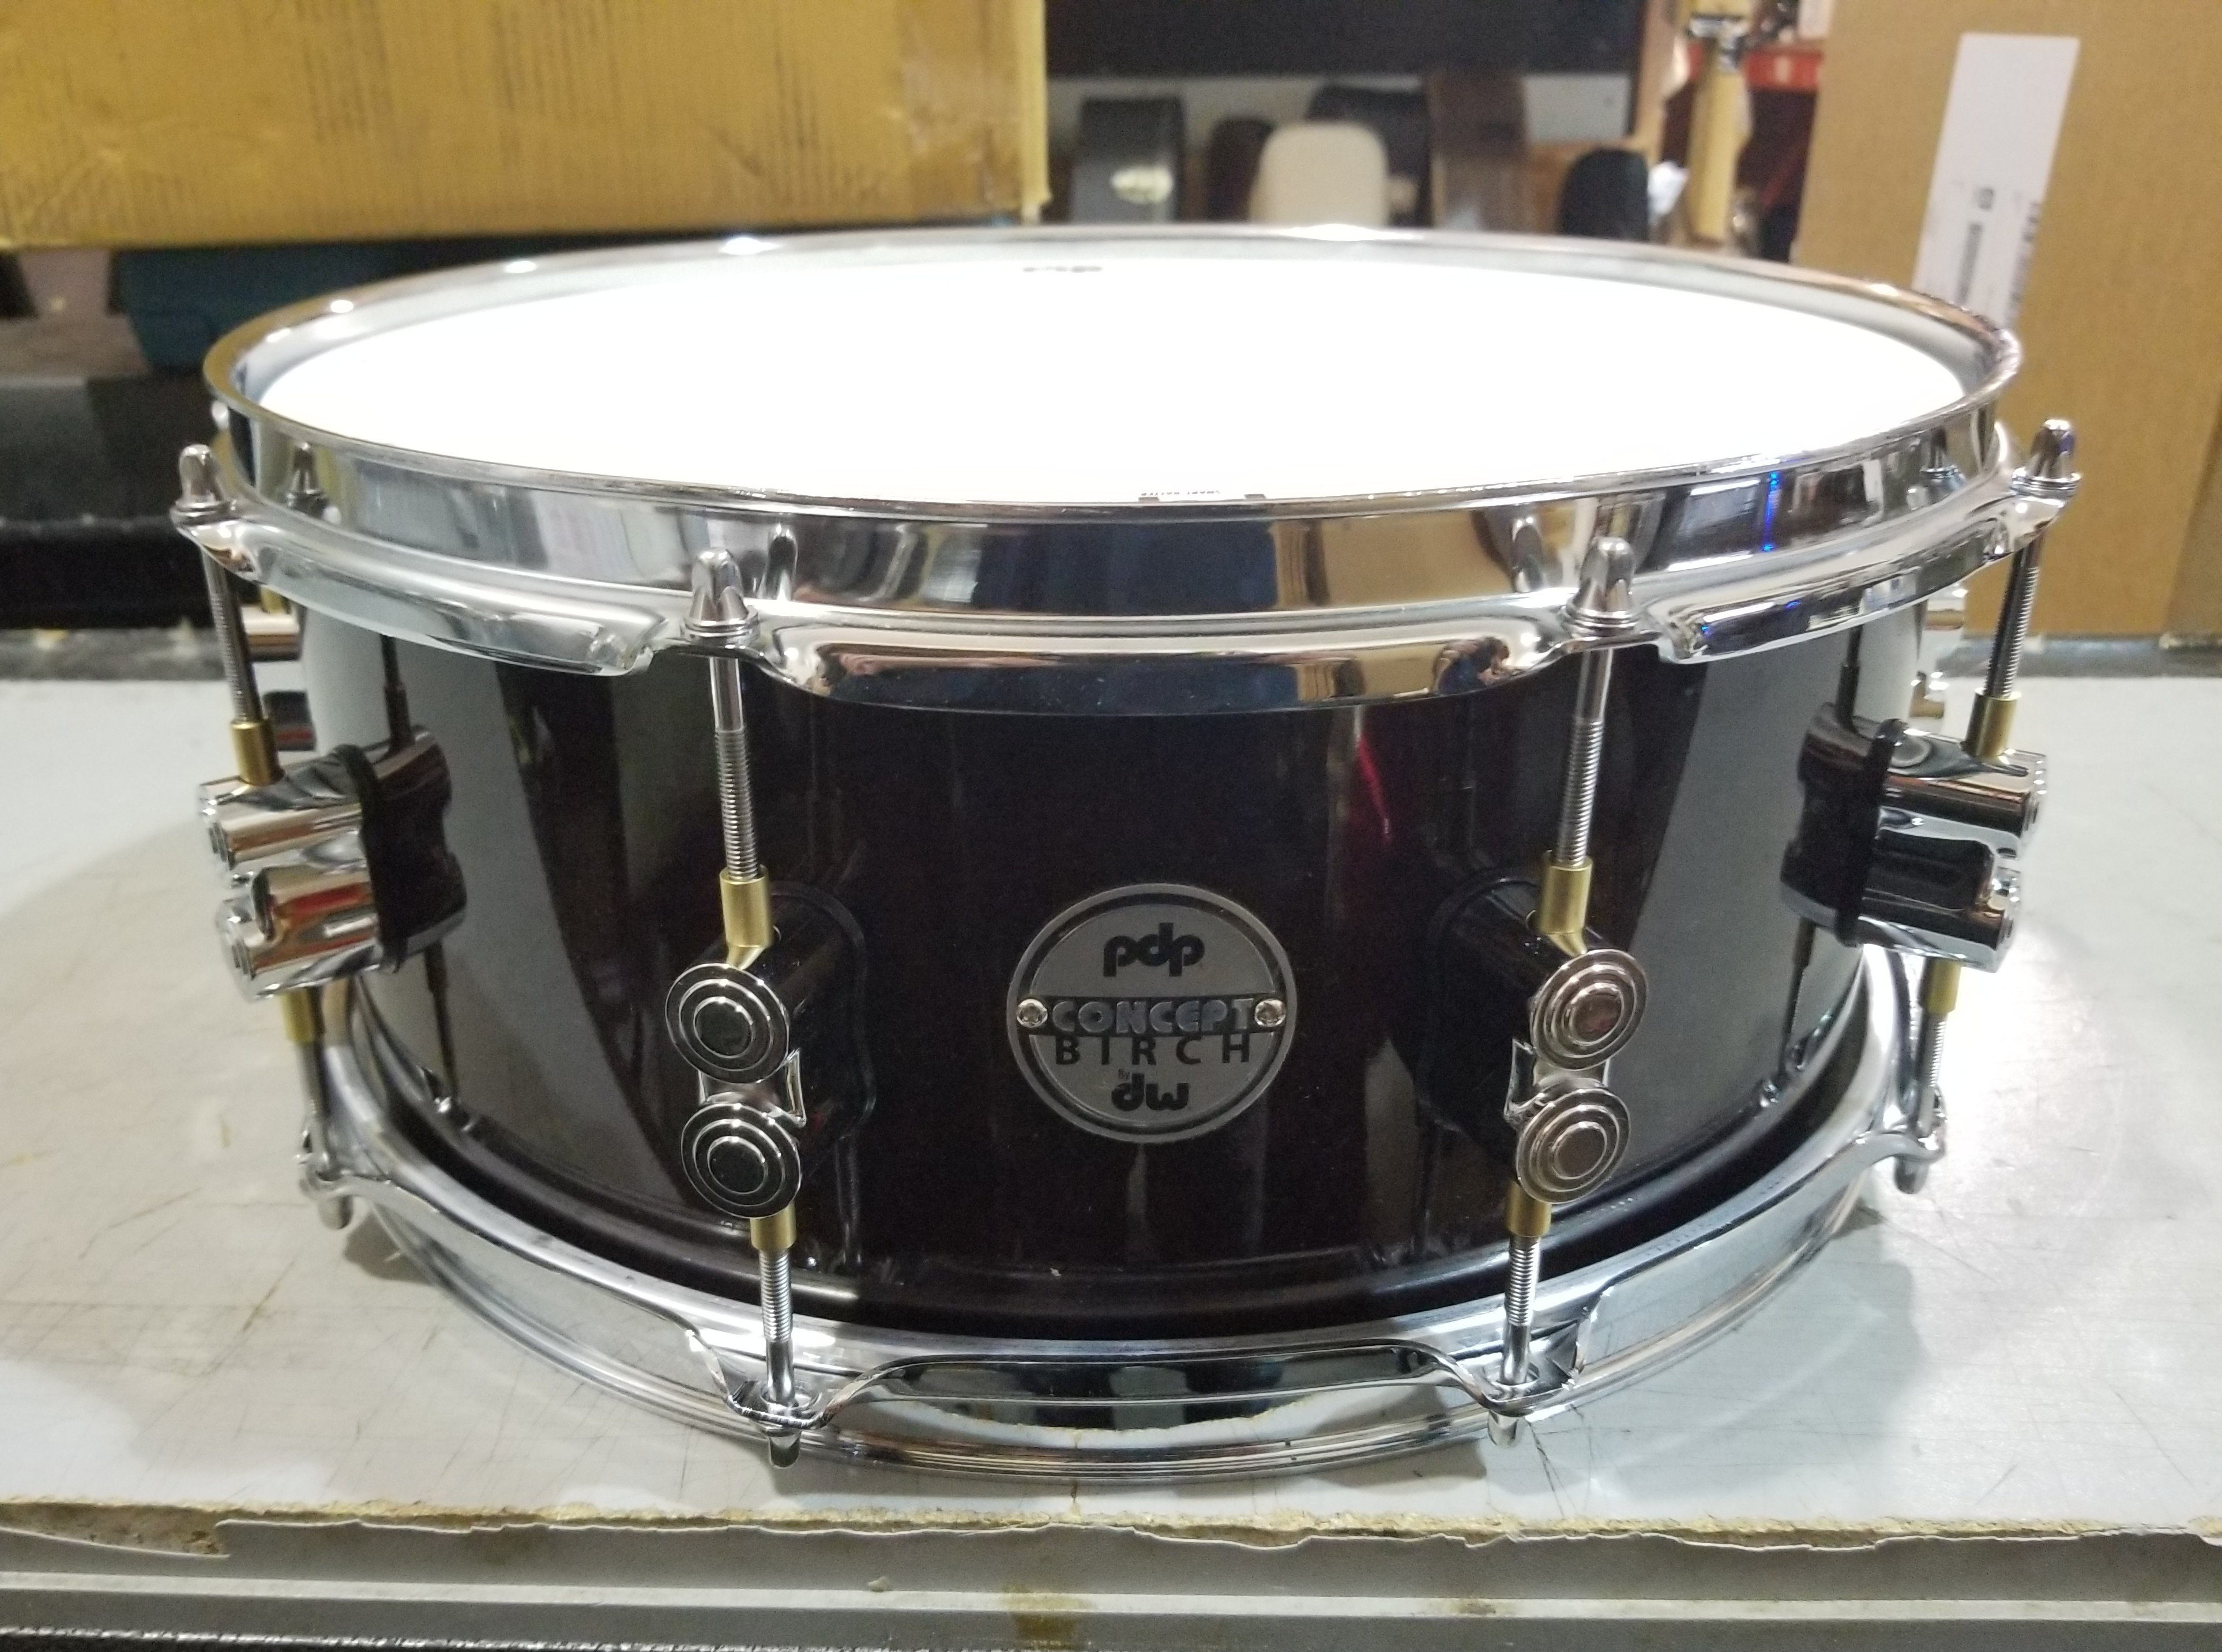 PDP Birch Concept Snare Drum 5.5